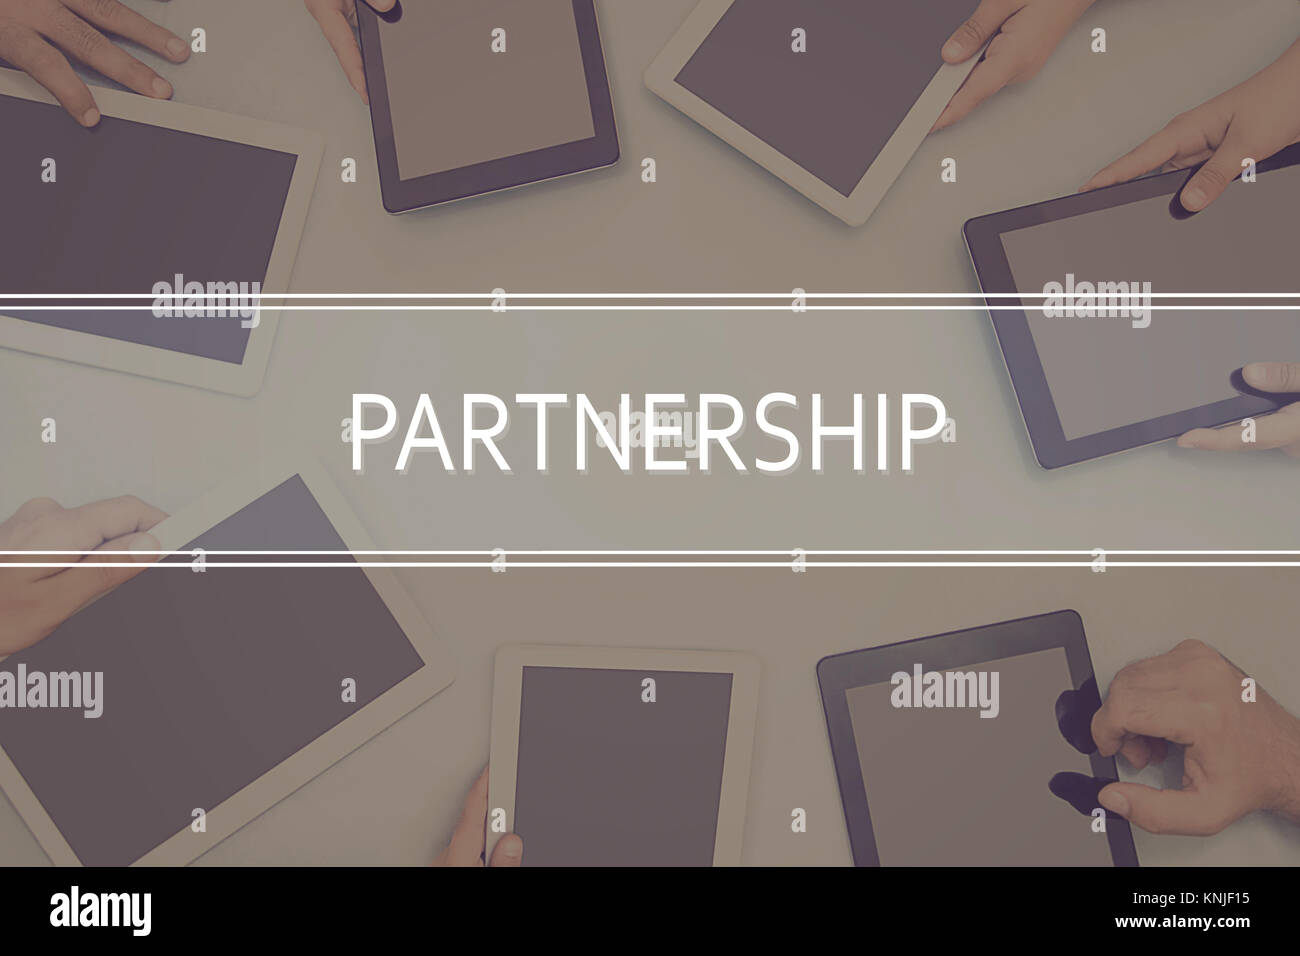 PARTNERSHIP CONCEPT Business Concept. - Stock Image